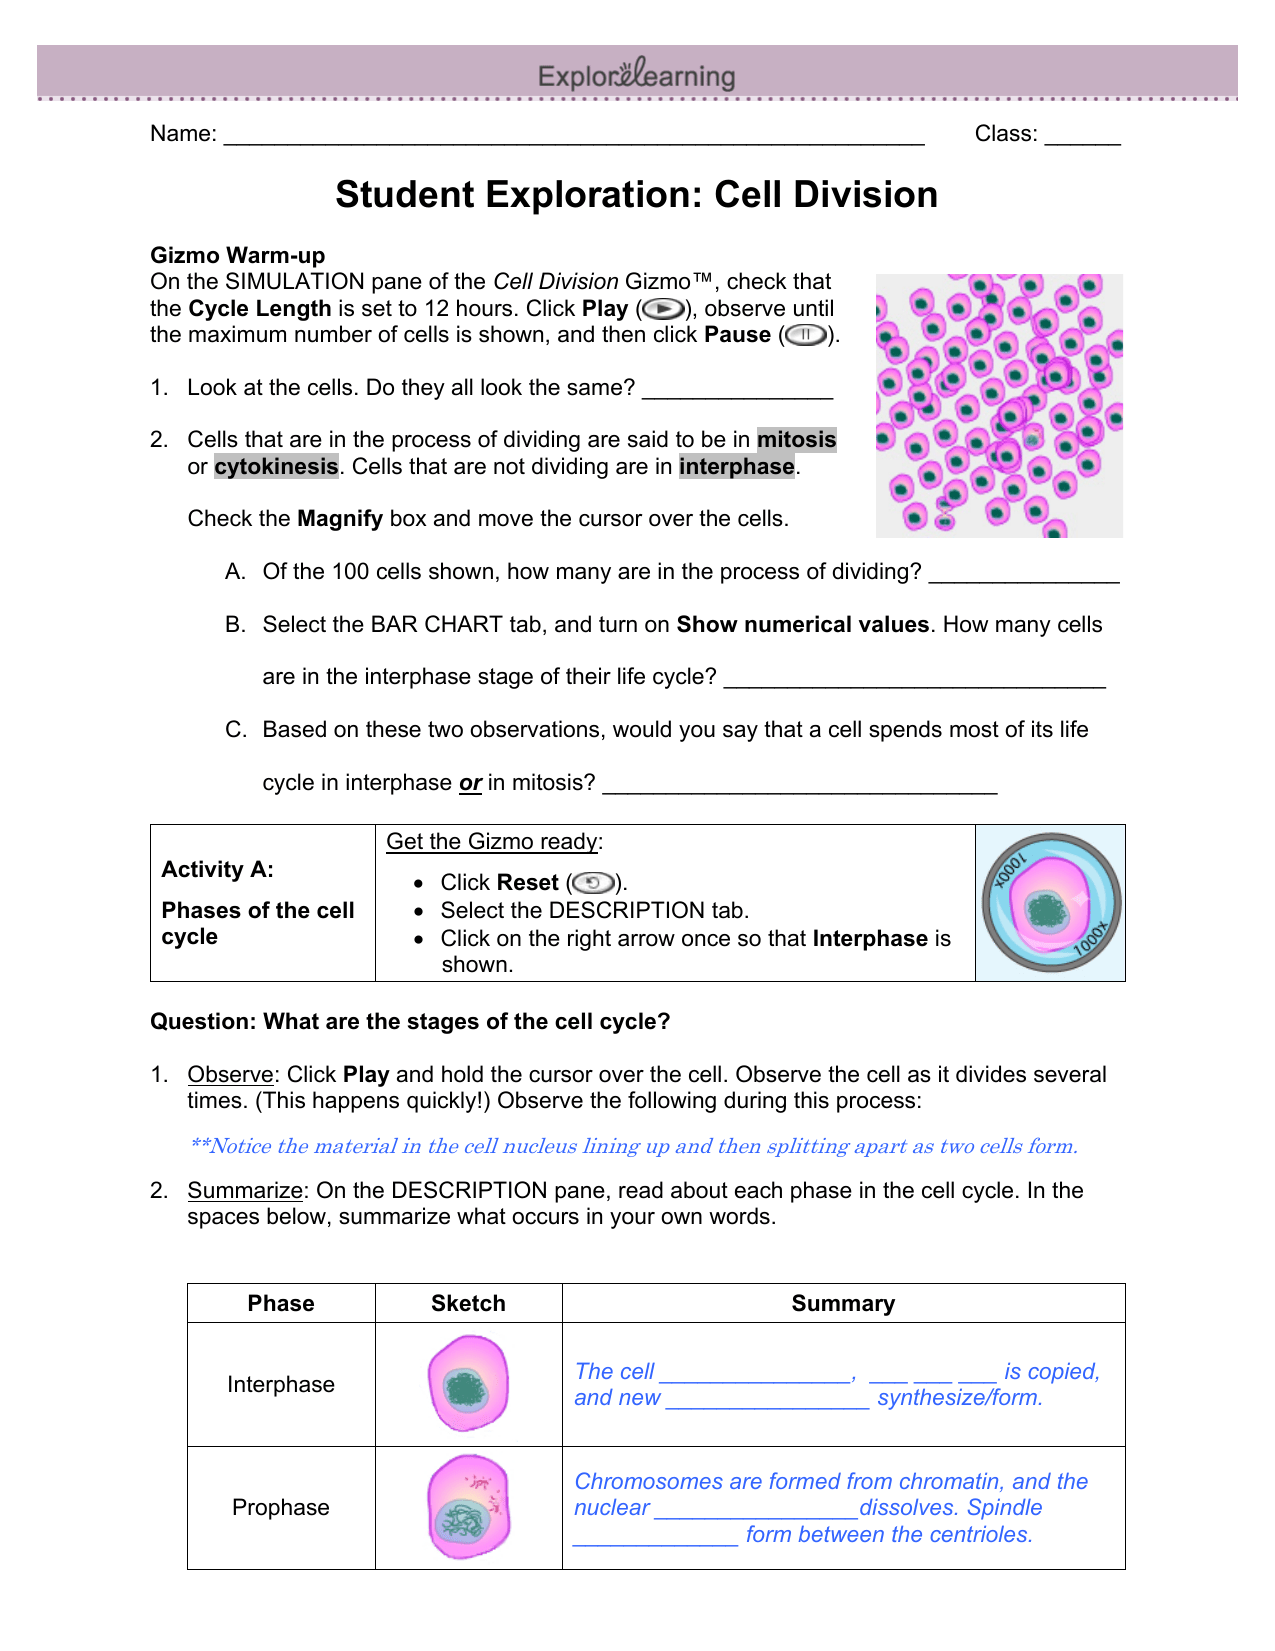 Student Exploration Dnaysis Worksheet Answers